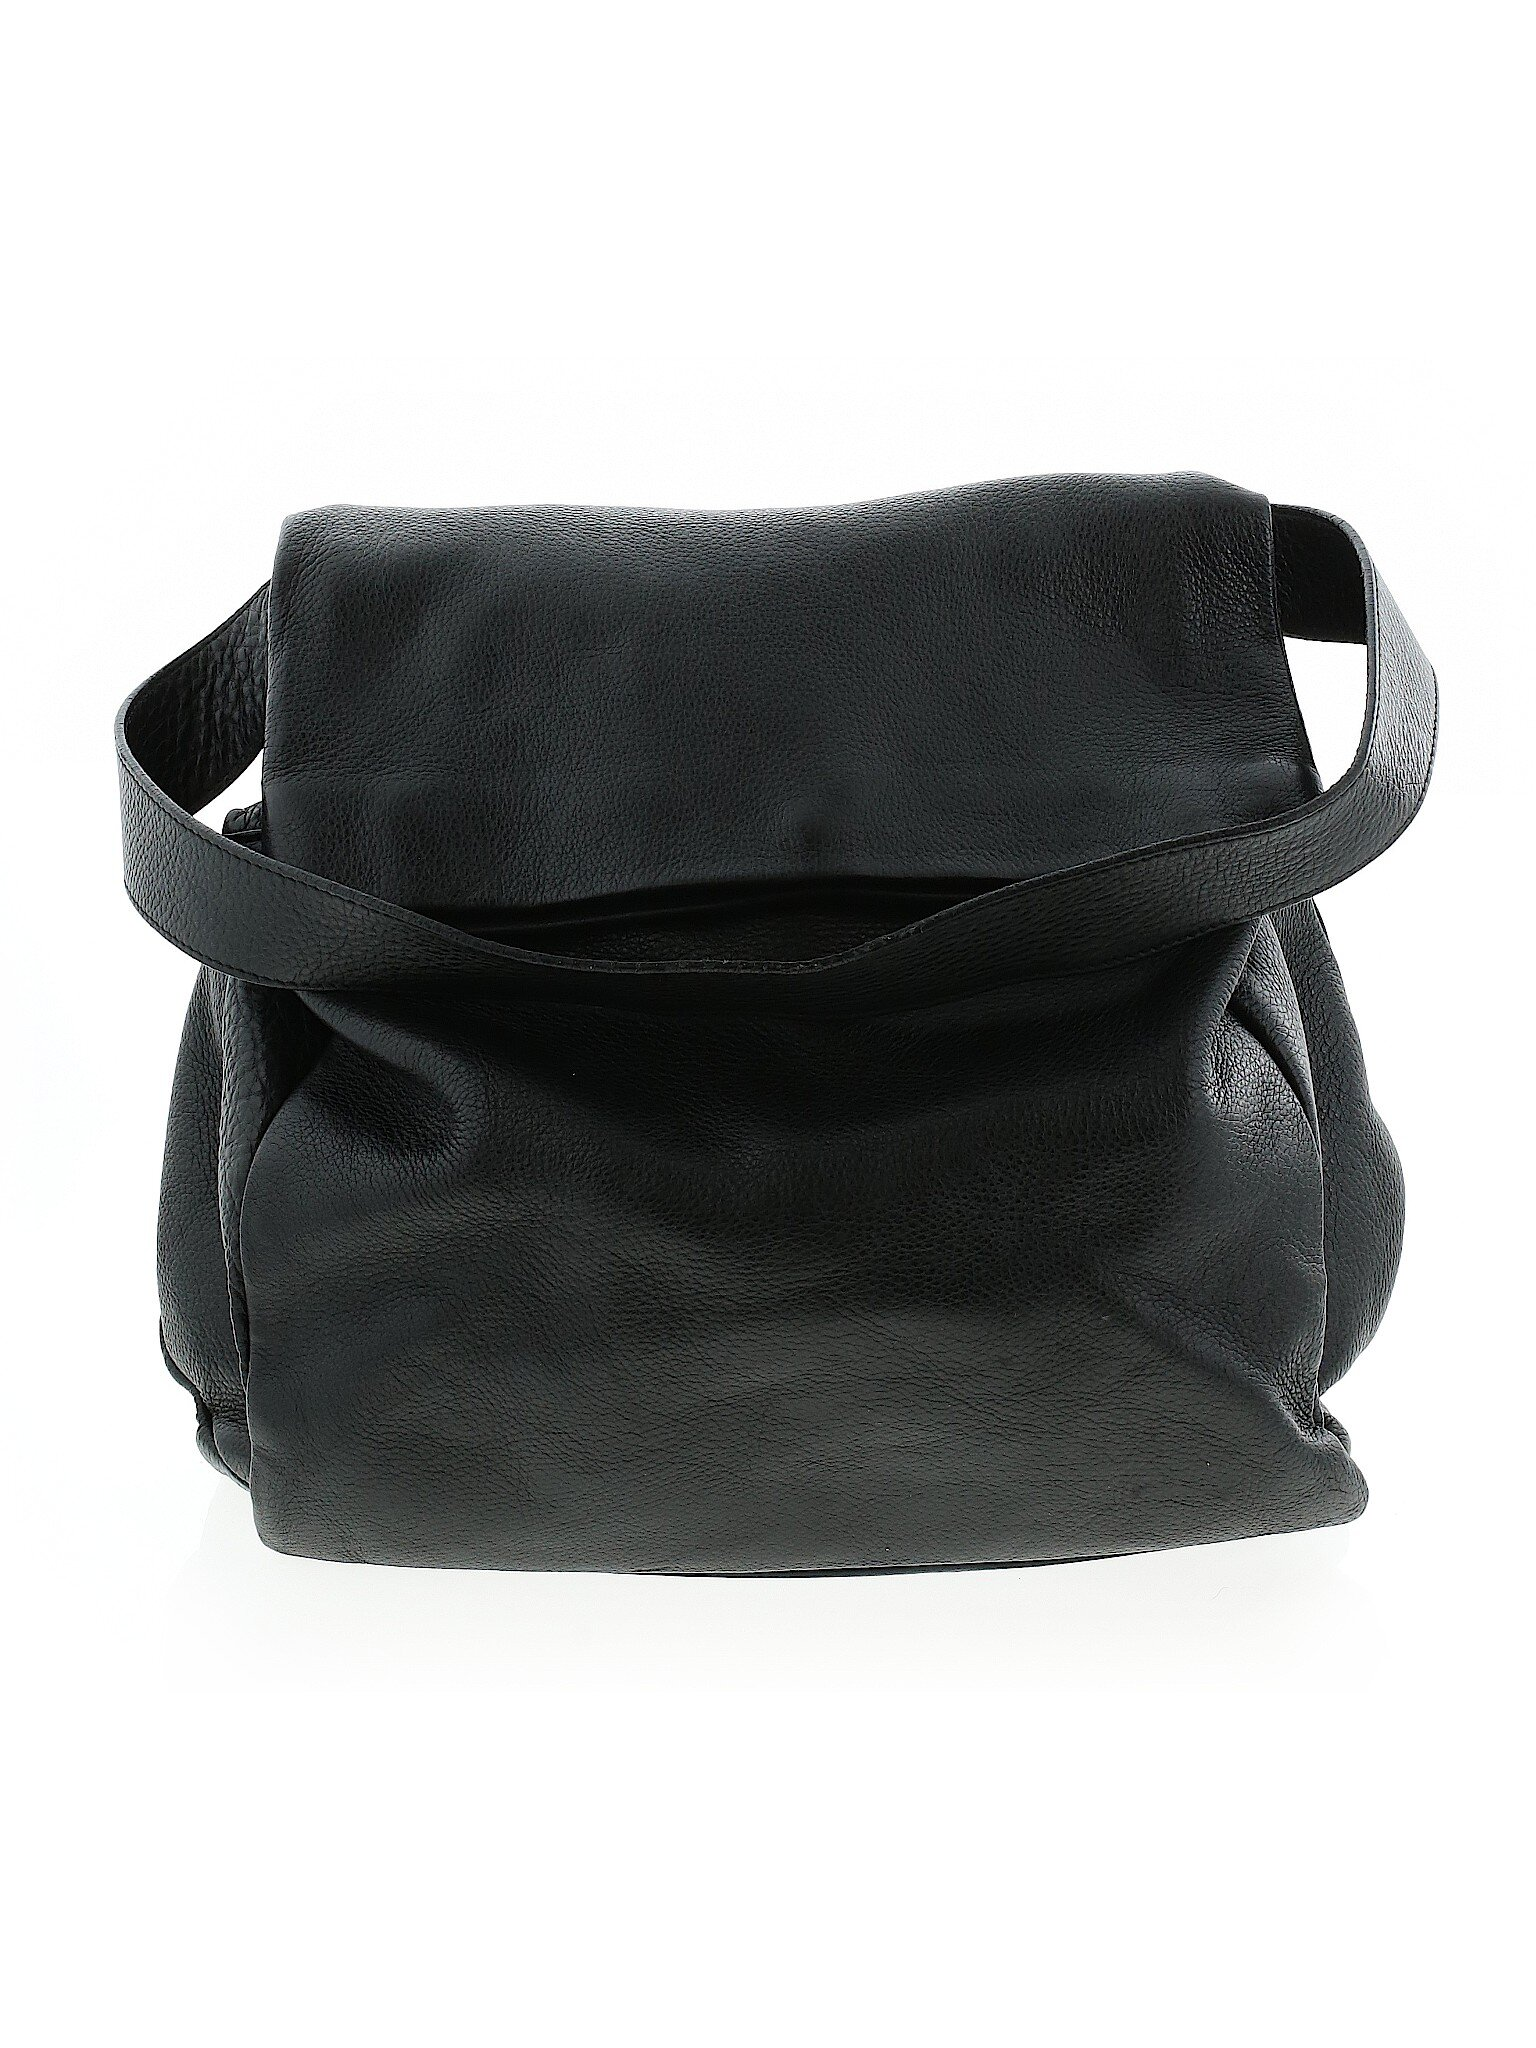 & Other Stories Black Leather Shoulder Bag  , 41.99  A simple a practical bag that's a more interesting take on a tote bag.